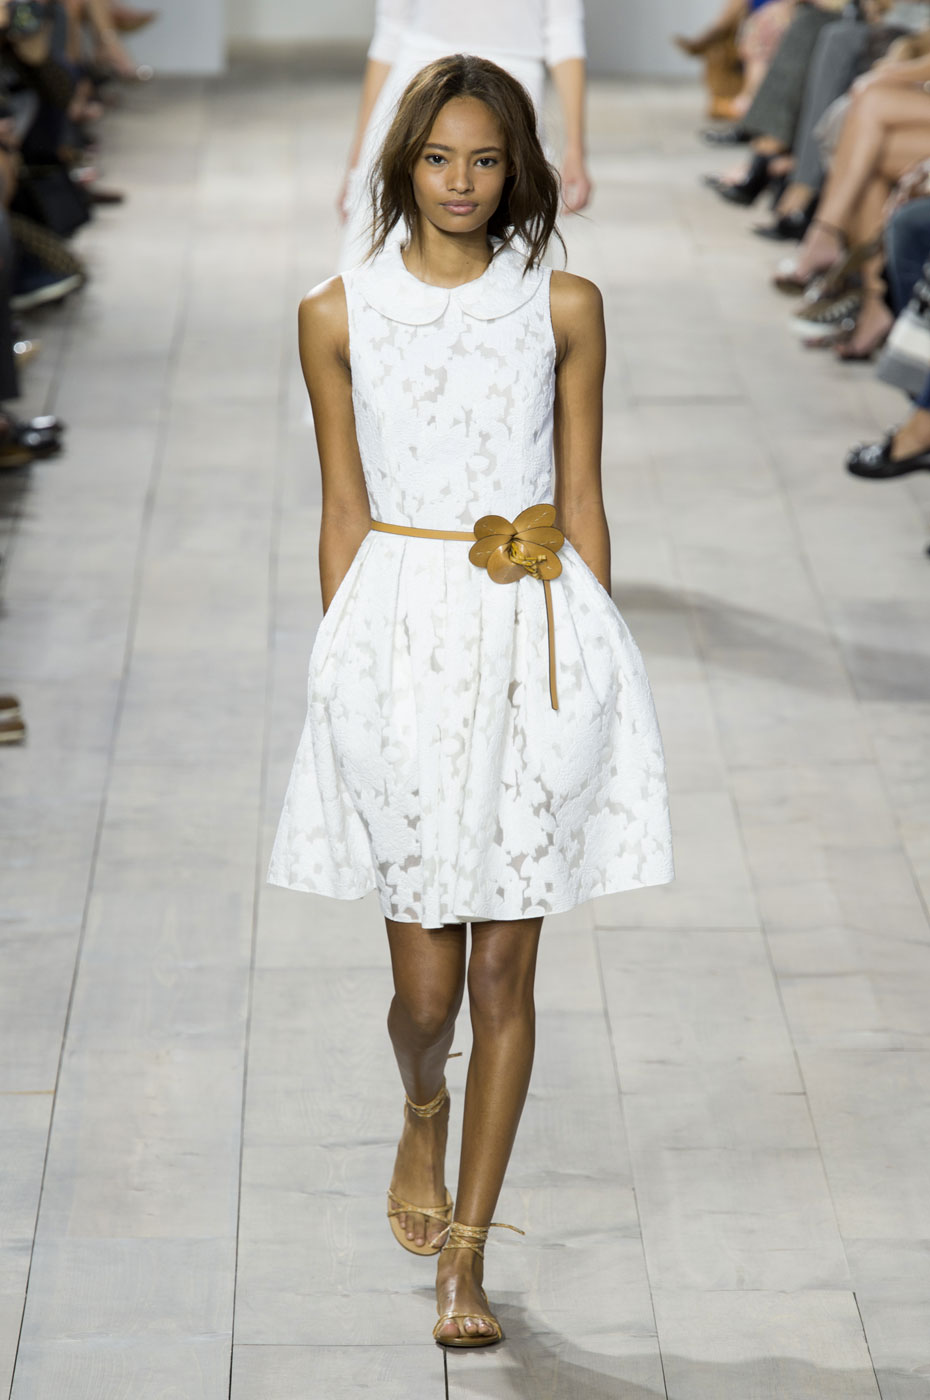 How to white a accessorize dress